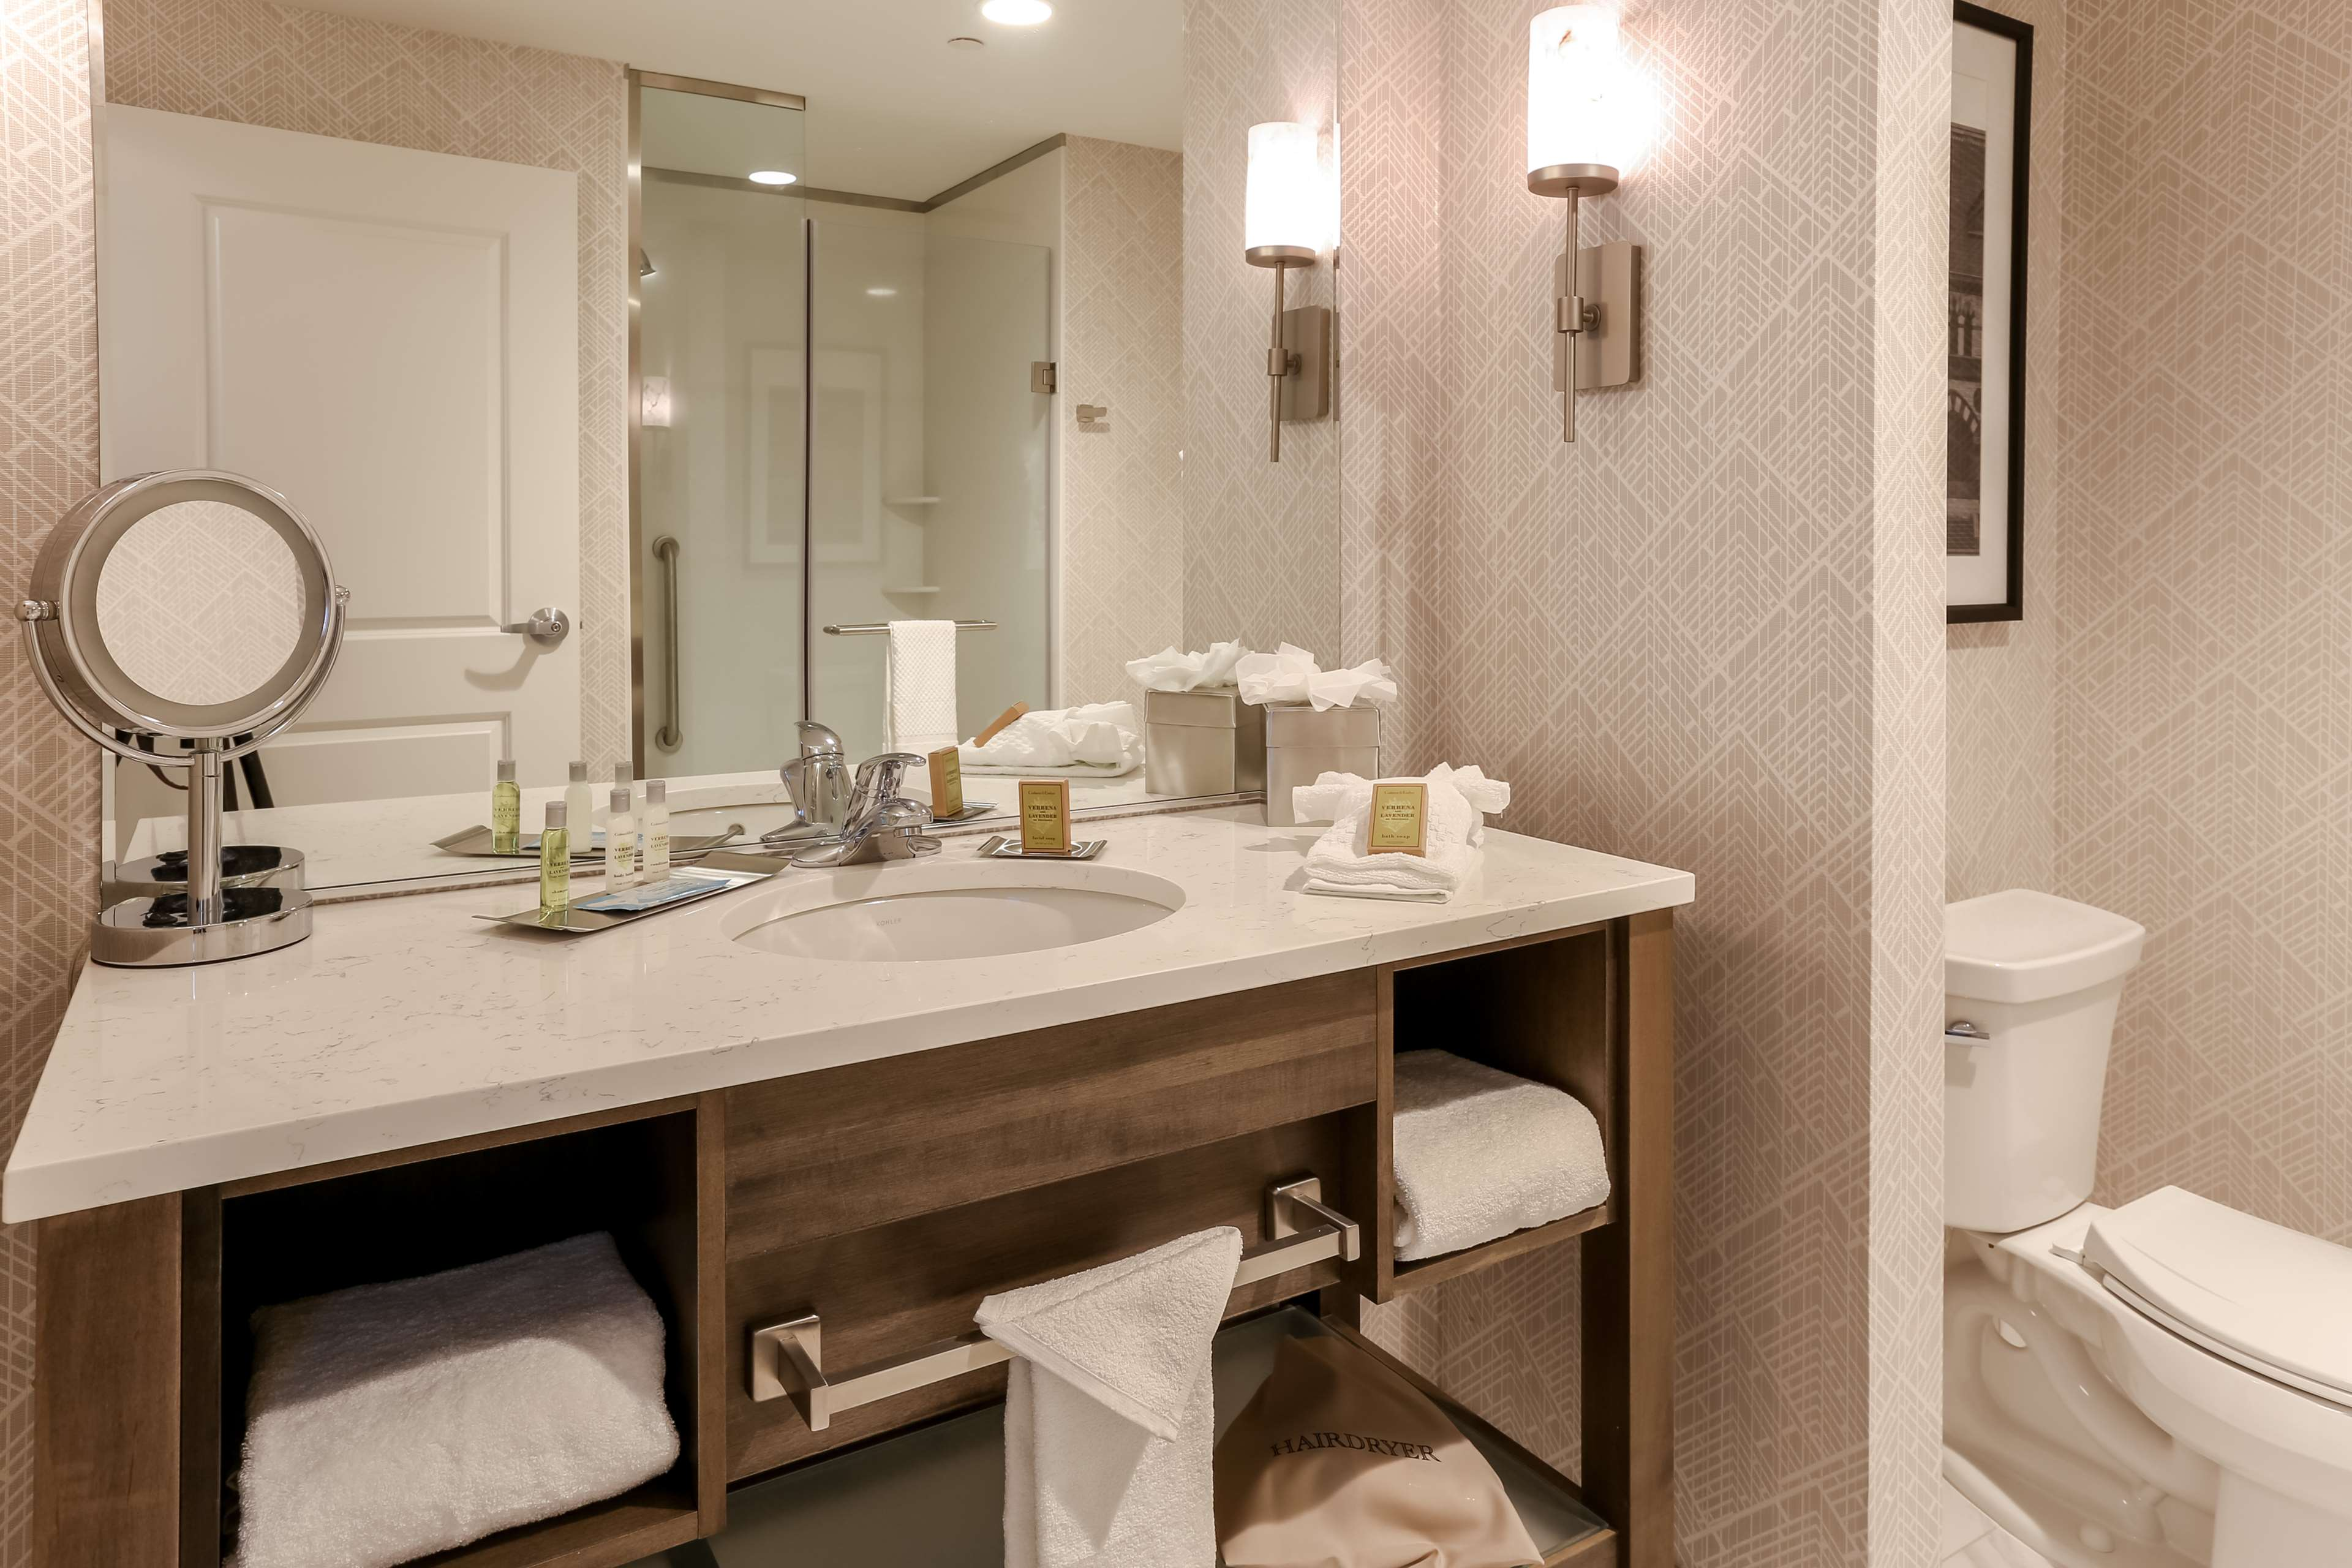 DoubleTree by Hilton Evansville image 38